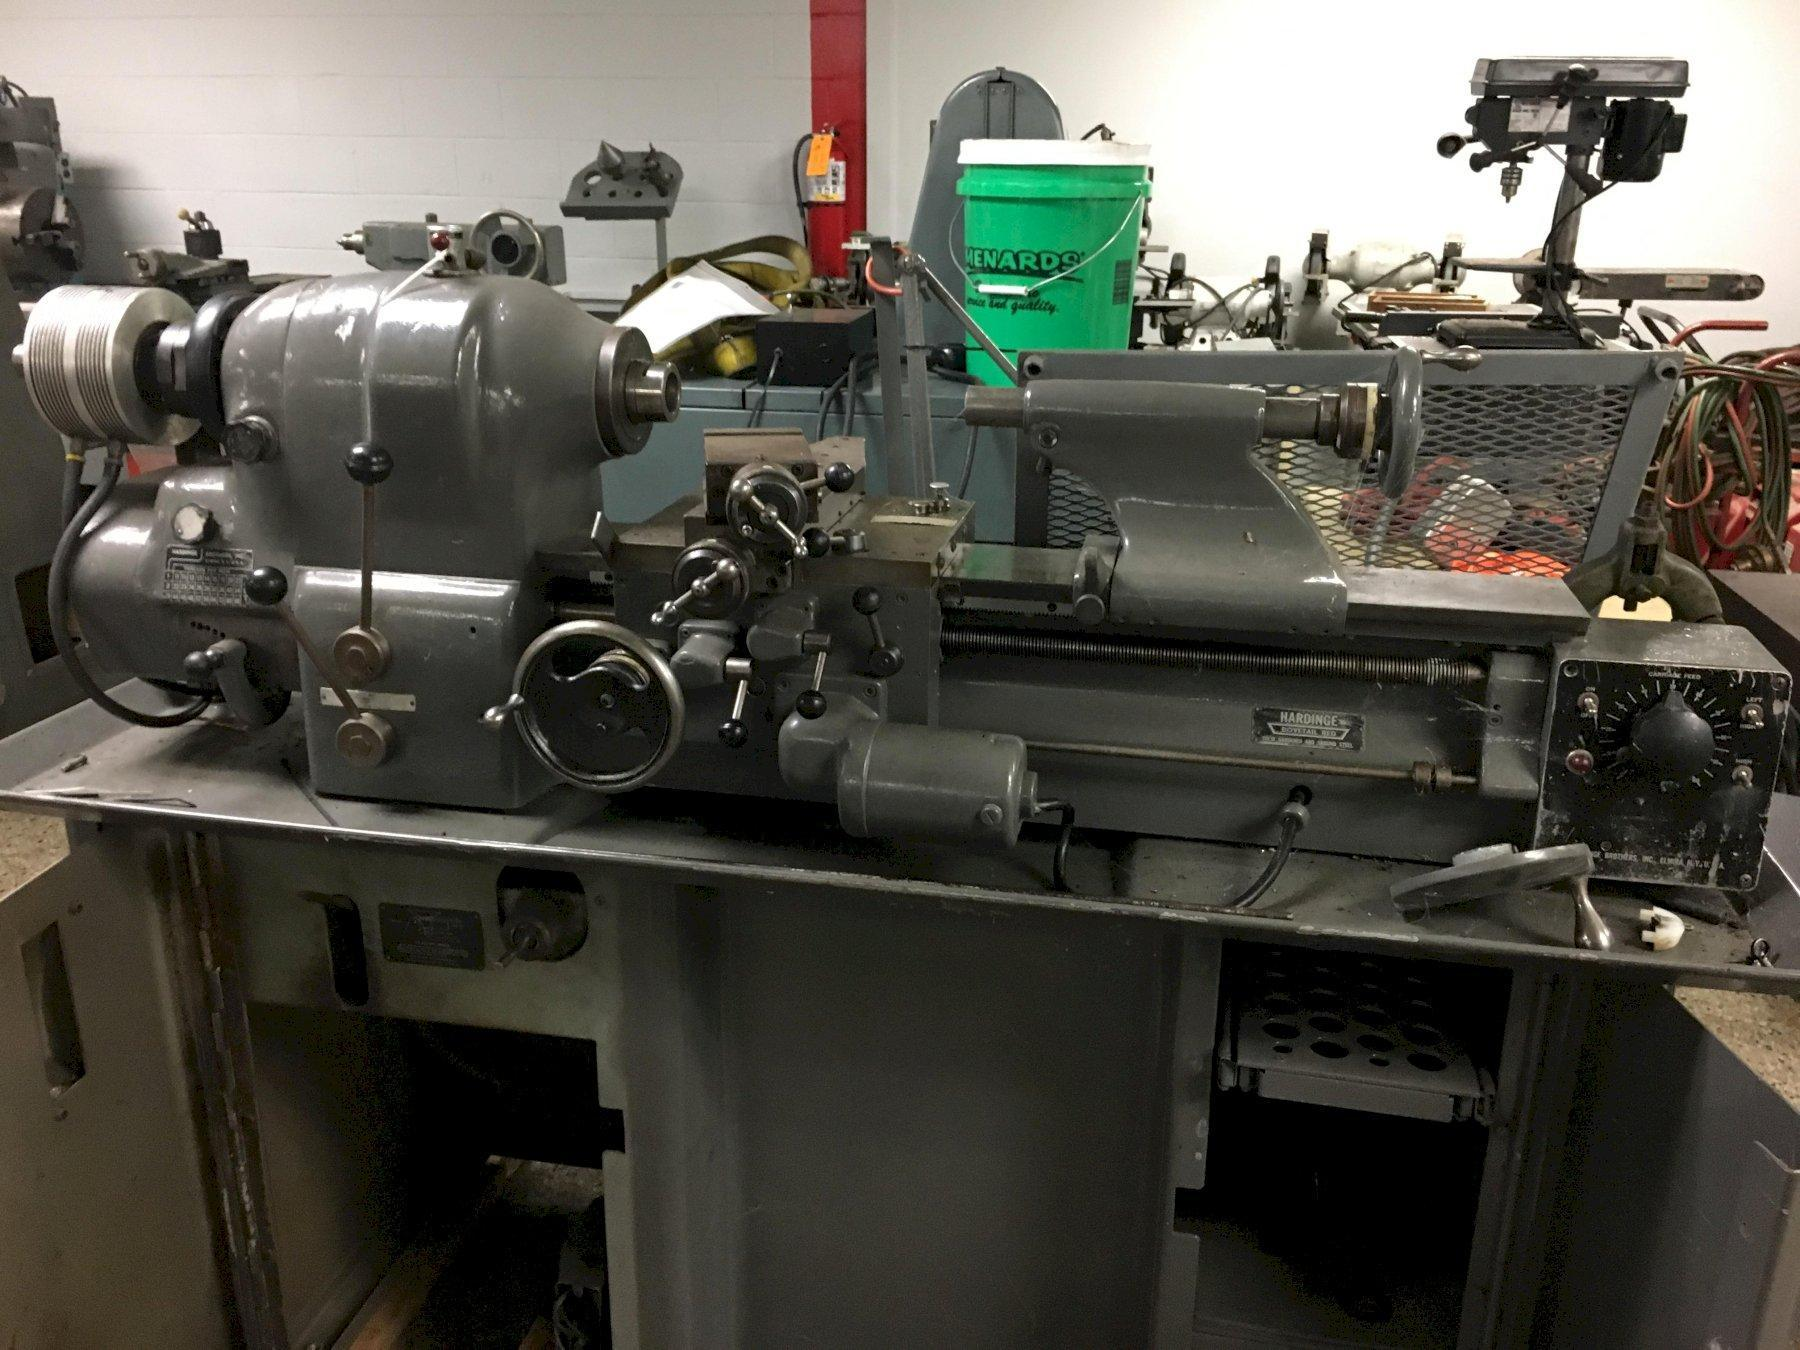 "11"" x 18"" Hardinge Model HLV Precision Toolroom Lathe with Dunham Pneumatic 5C Closer, New Approx 1950. Offered as is. Needs Work."